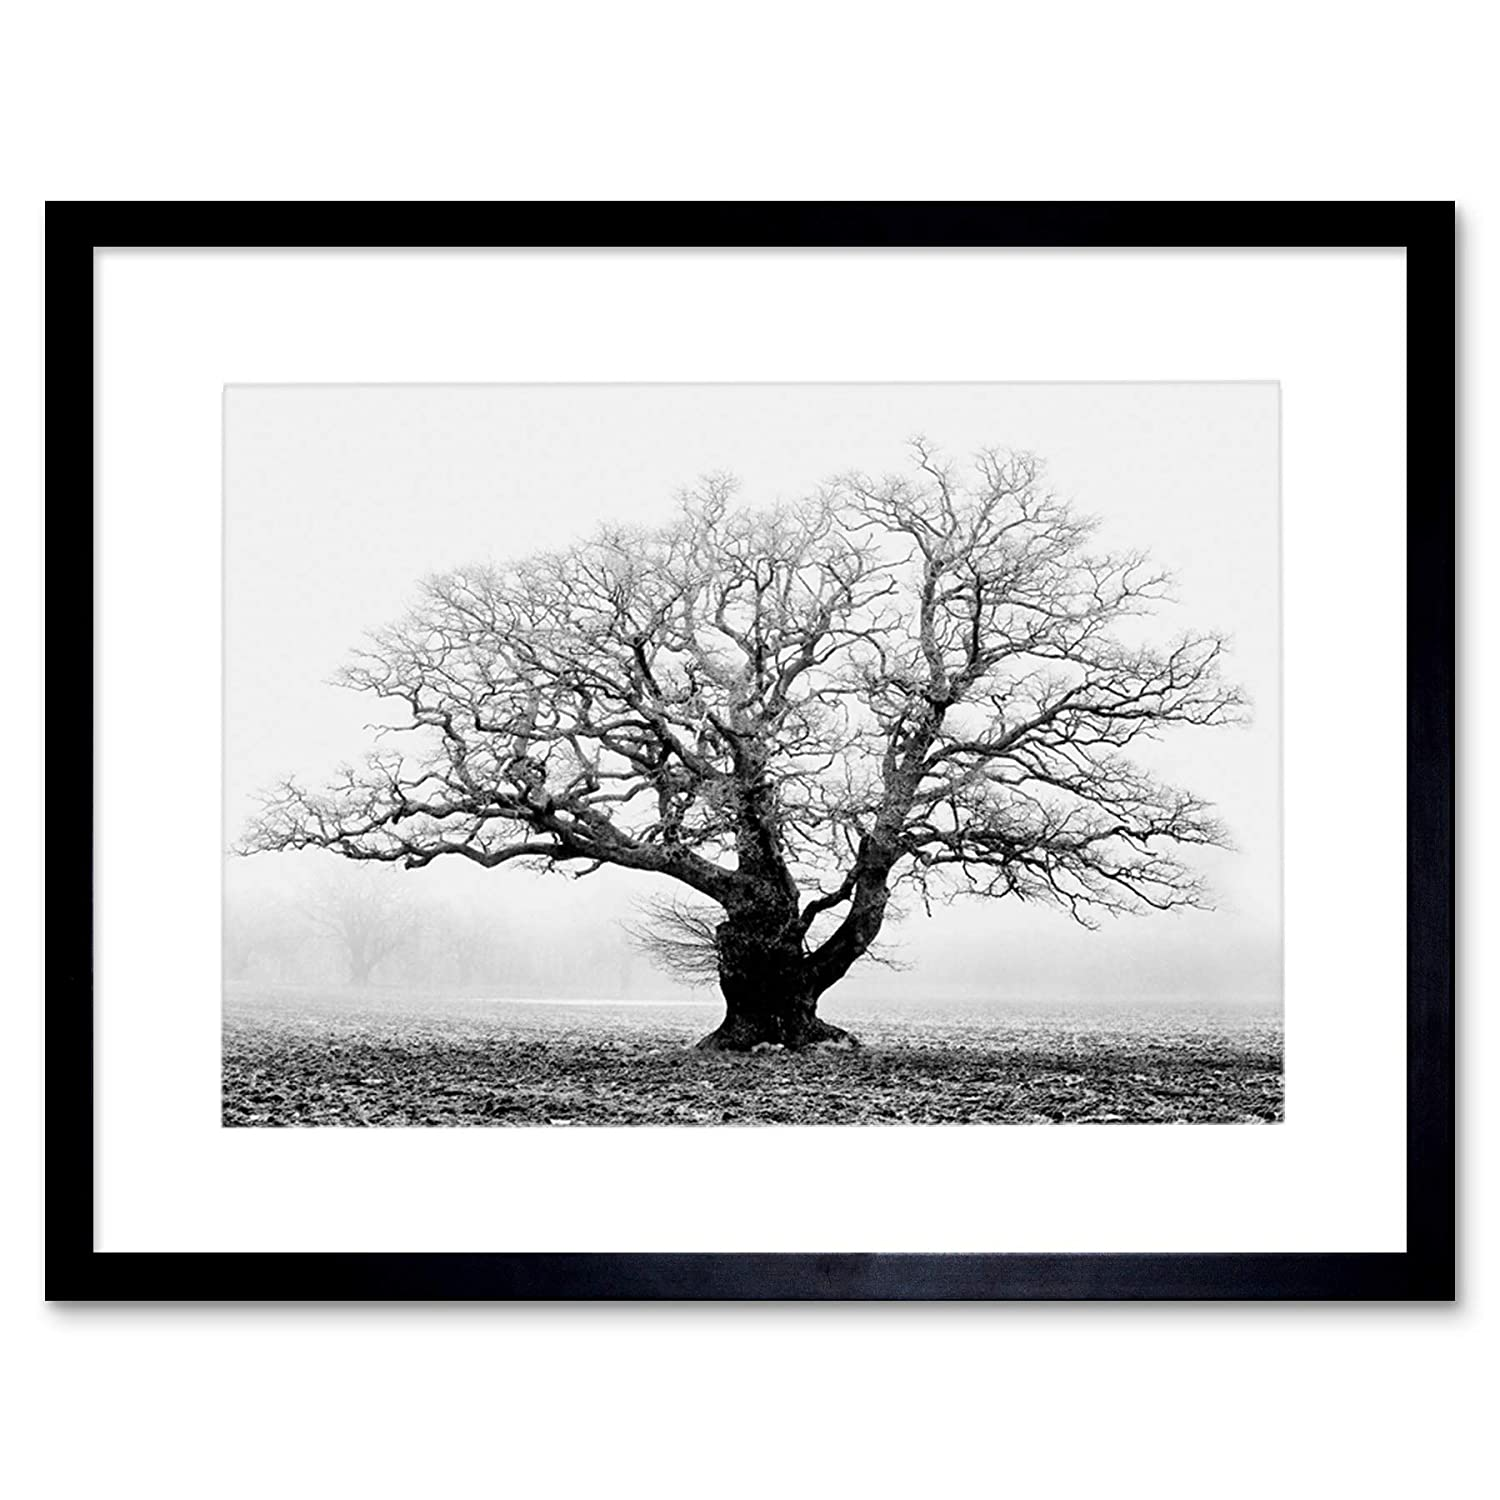 Amazon com old oak tree black white mist fog photo framed art print picture mount f12x634 posters prints